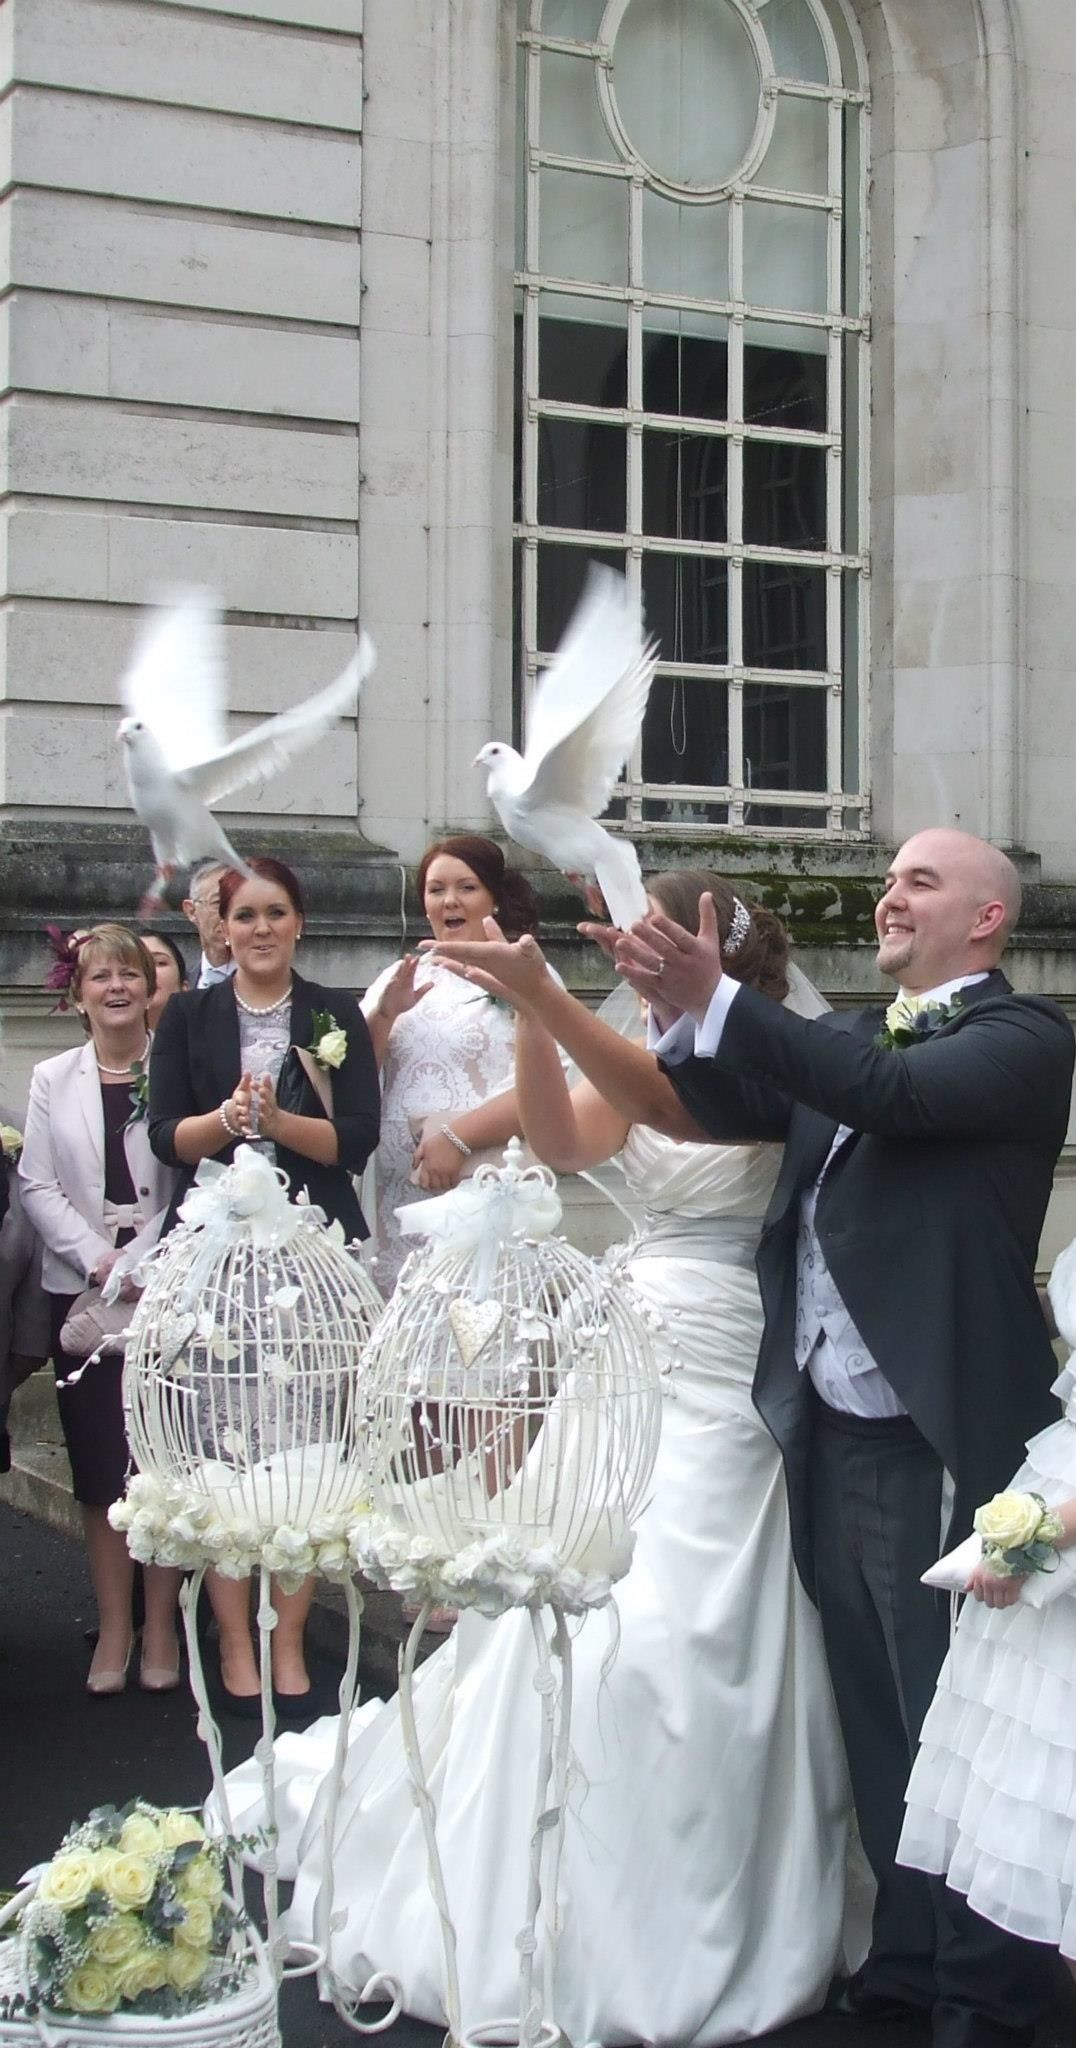 Lovey Dovey UK offer beautiful, pristine white doves to